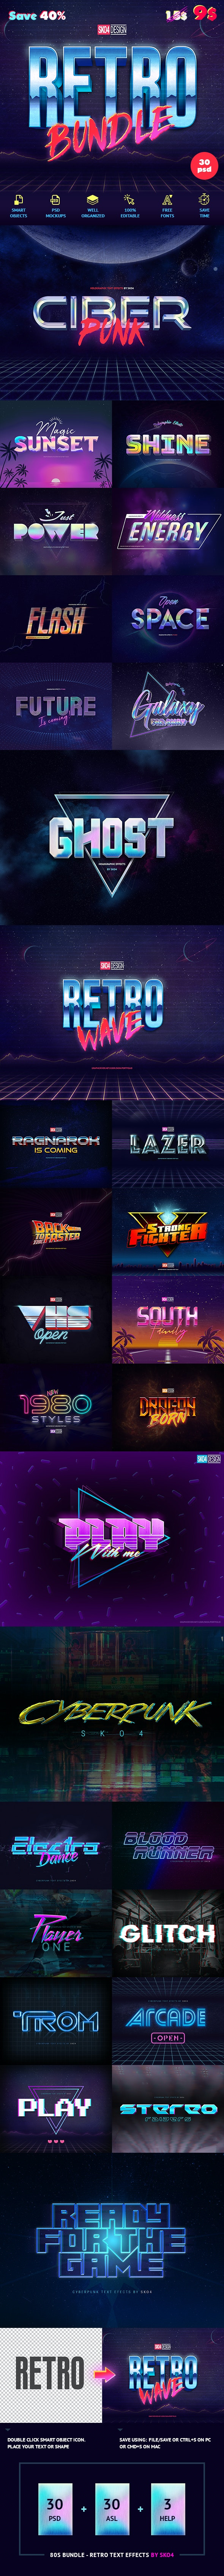 80s Retro Bundle - Text Effects - Text Effects Actions